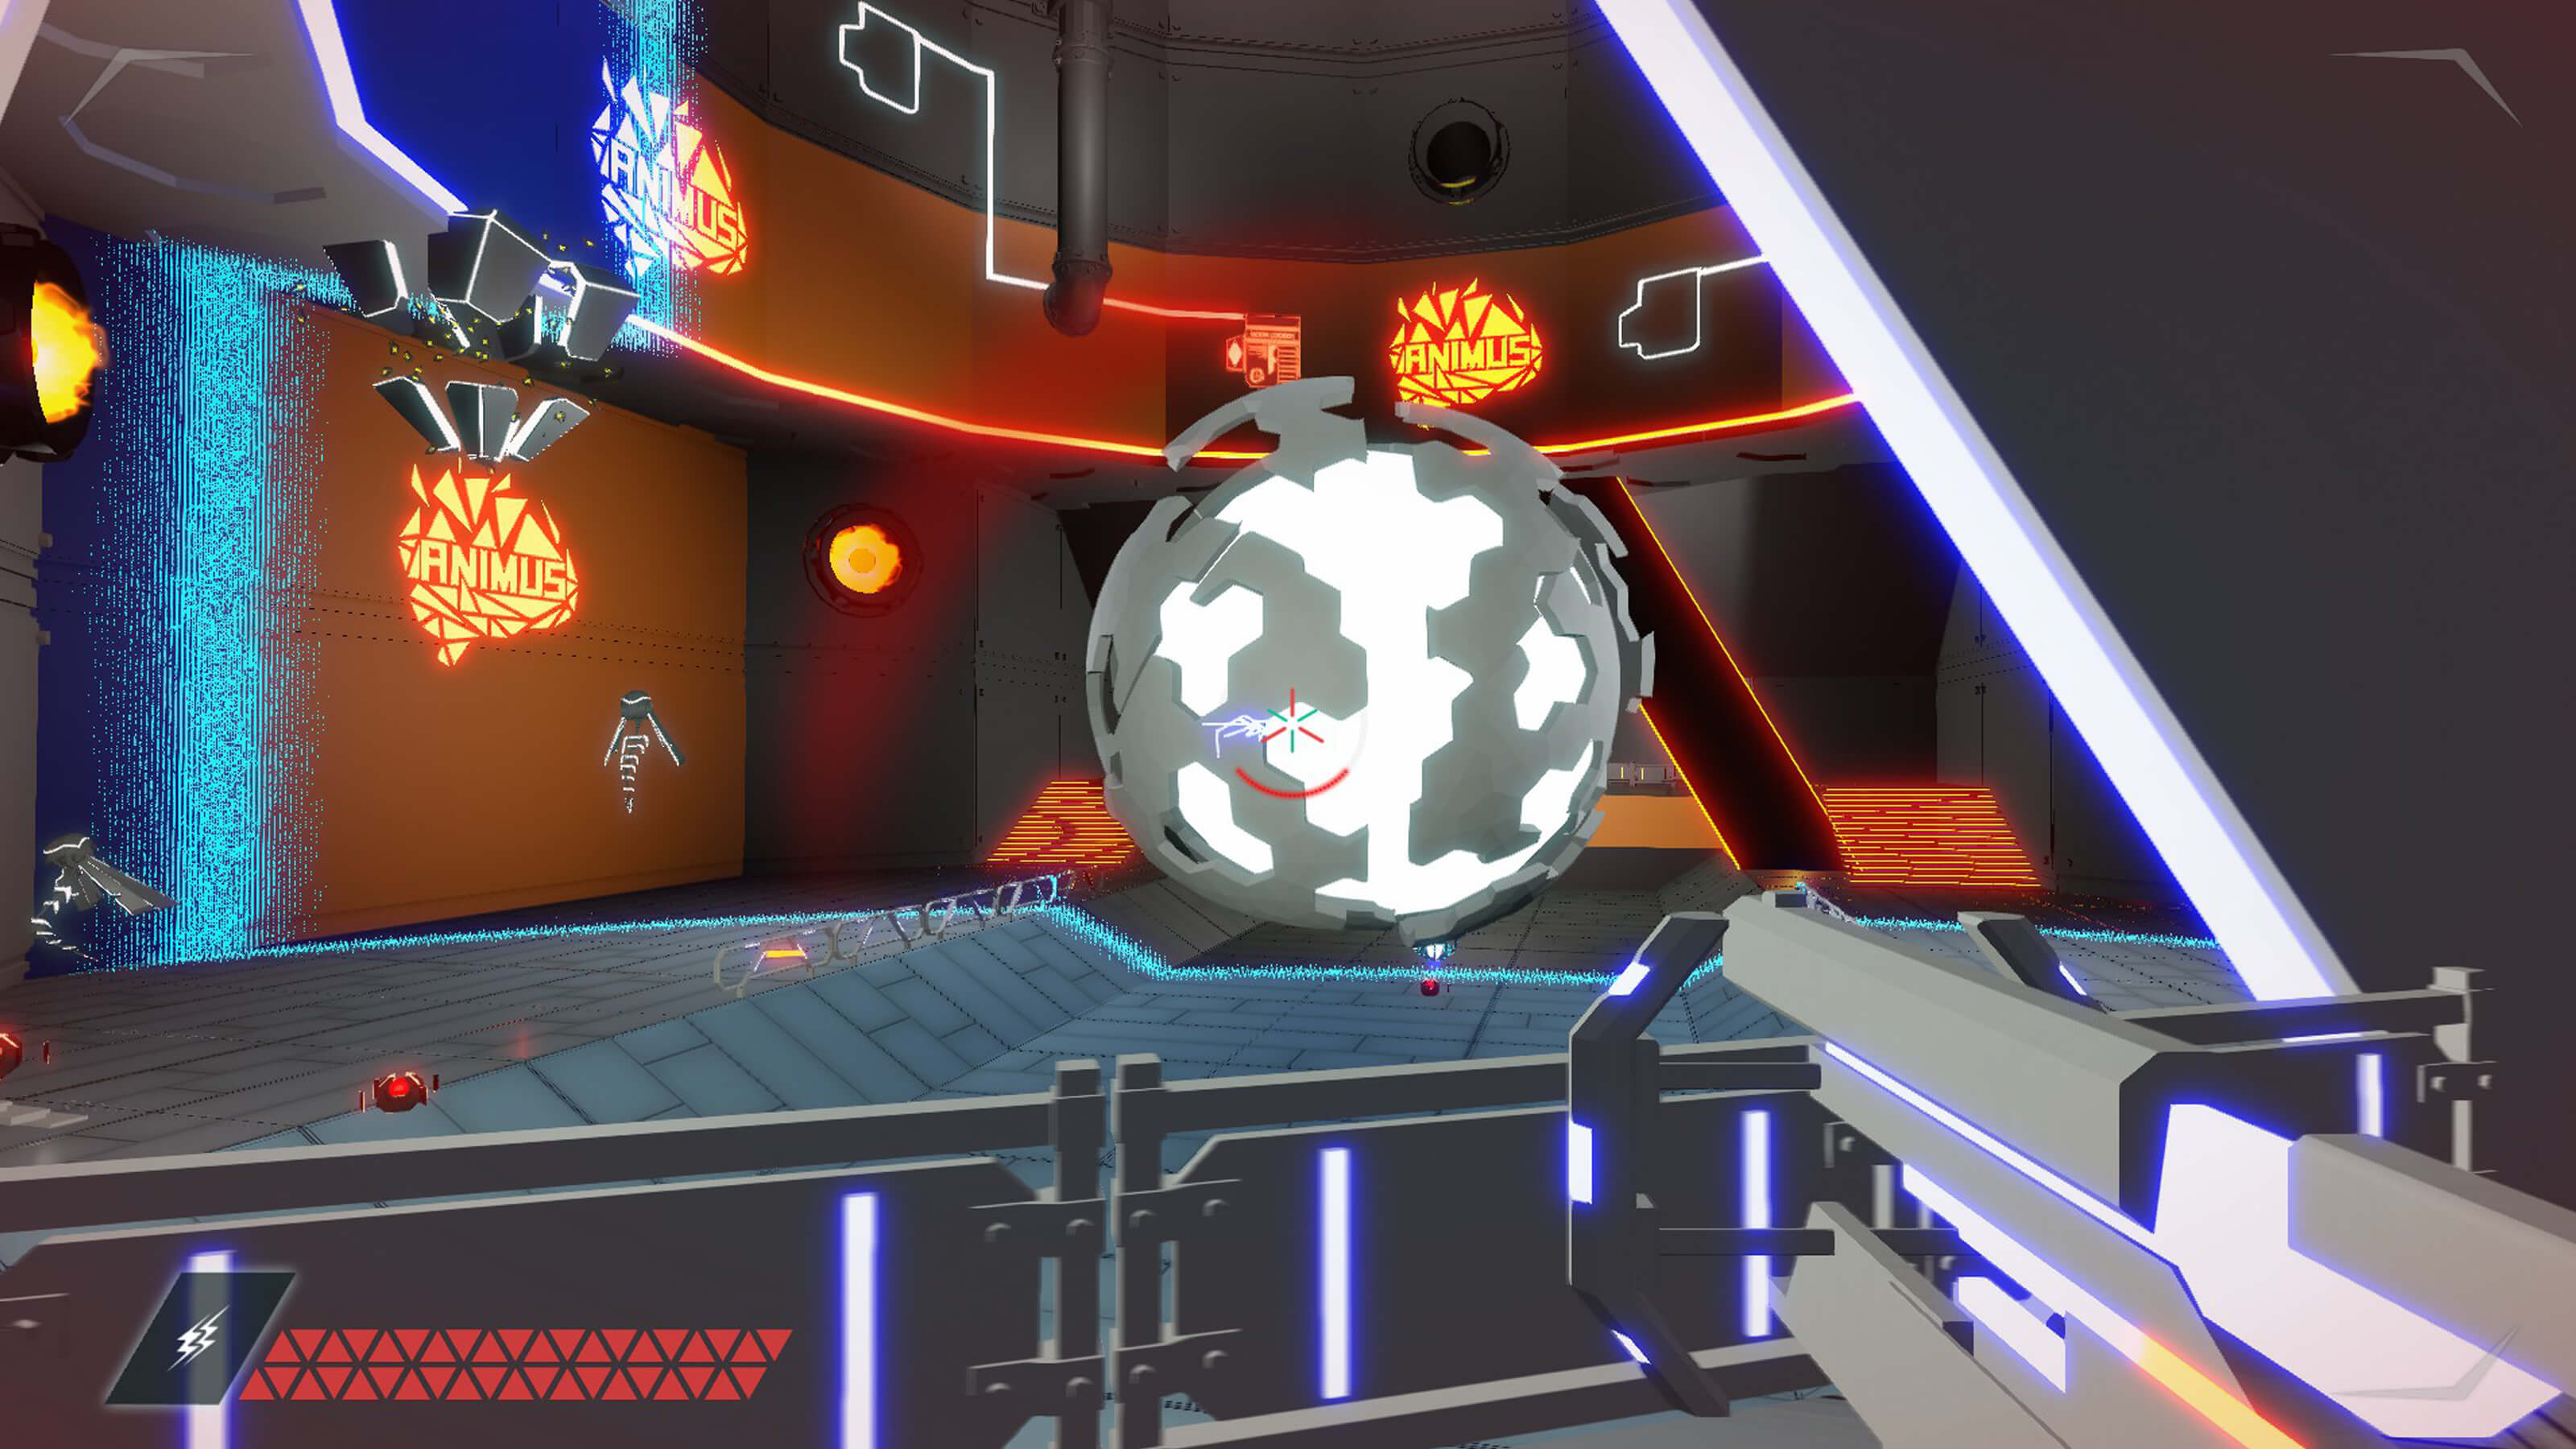 The player aims their gun at Animus Fault's central core, a glowing orb covered by geometric floating armor.